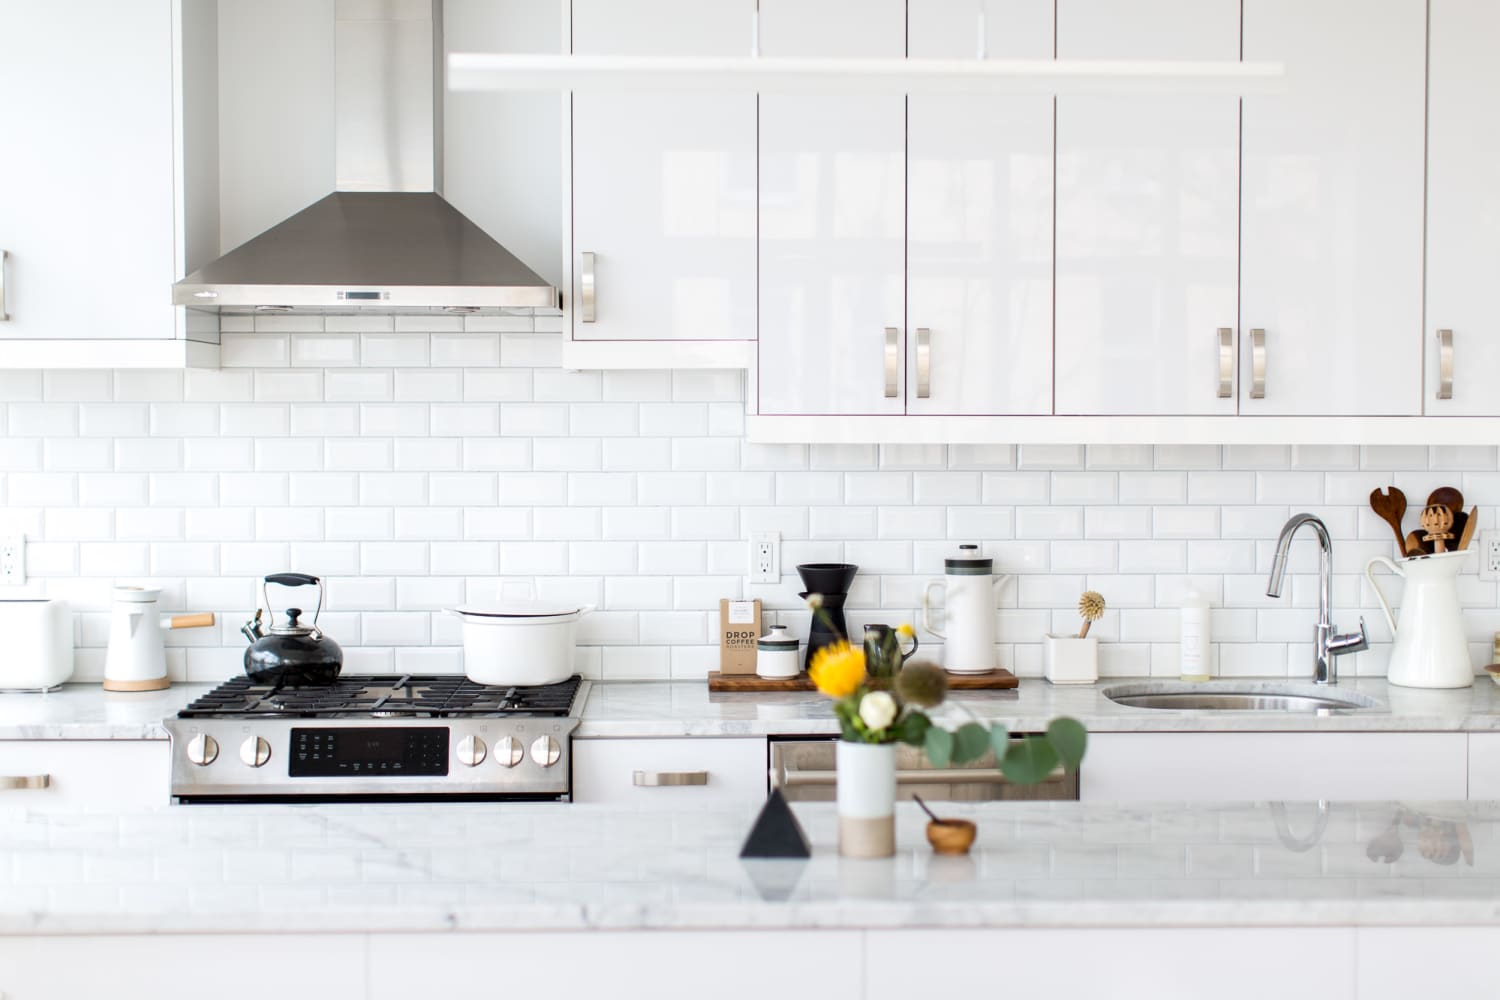 We Have Proof: All You Need for a Clean Home is 10 Minutes a Day